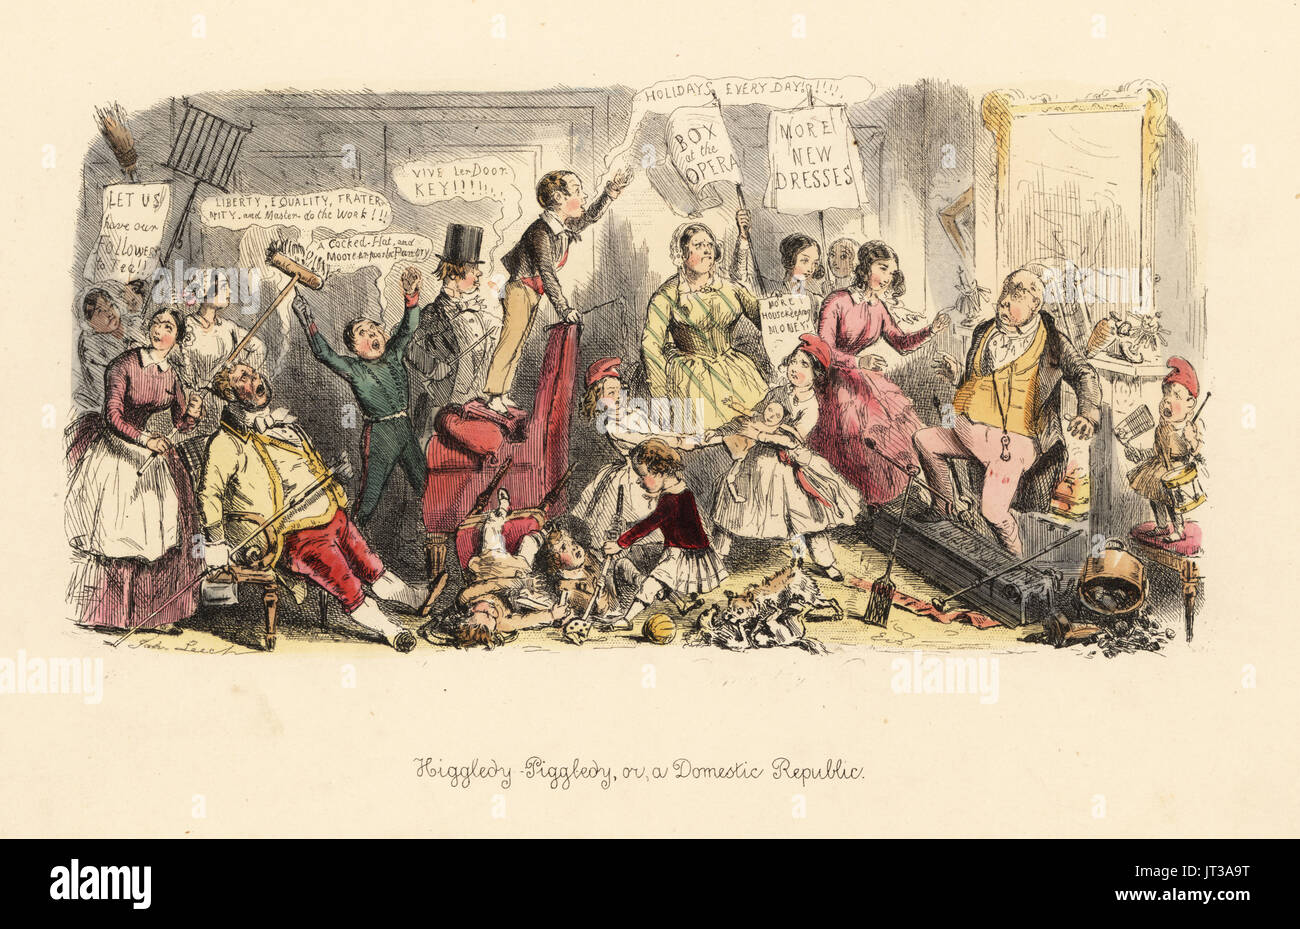 Higgledy-Piggledy, or a Domestic Republic 1849. Gentleman facing a revolt by his wife, children, housekeepper and servants. Handcoloured etching by John Leech from Follies of the Year, from Punch's Pocket Books, Bradbury, London, 1864. - Stock Image